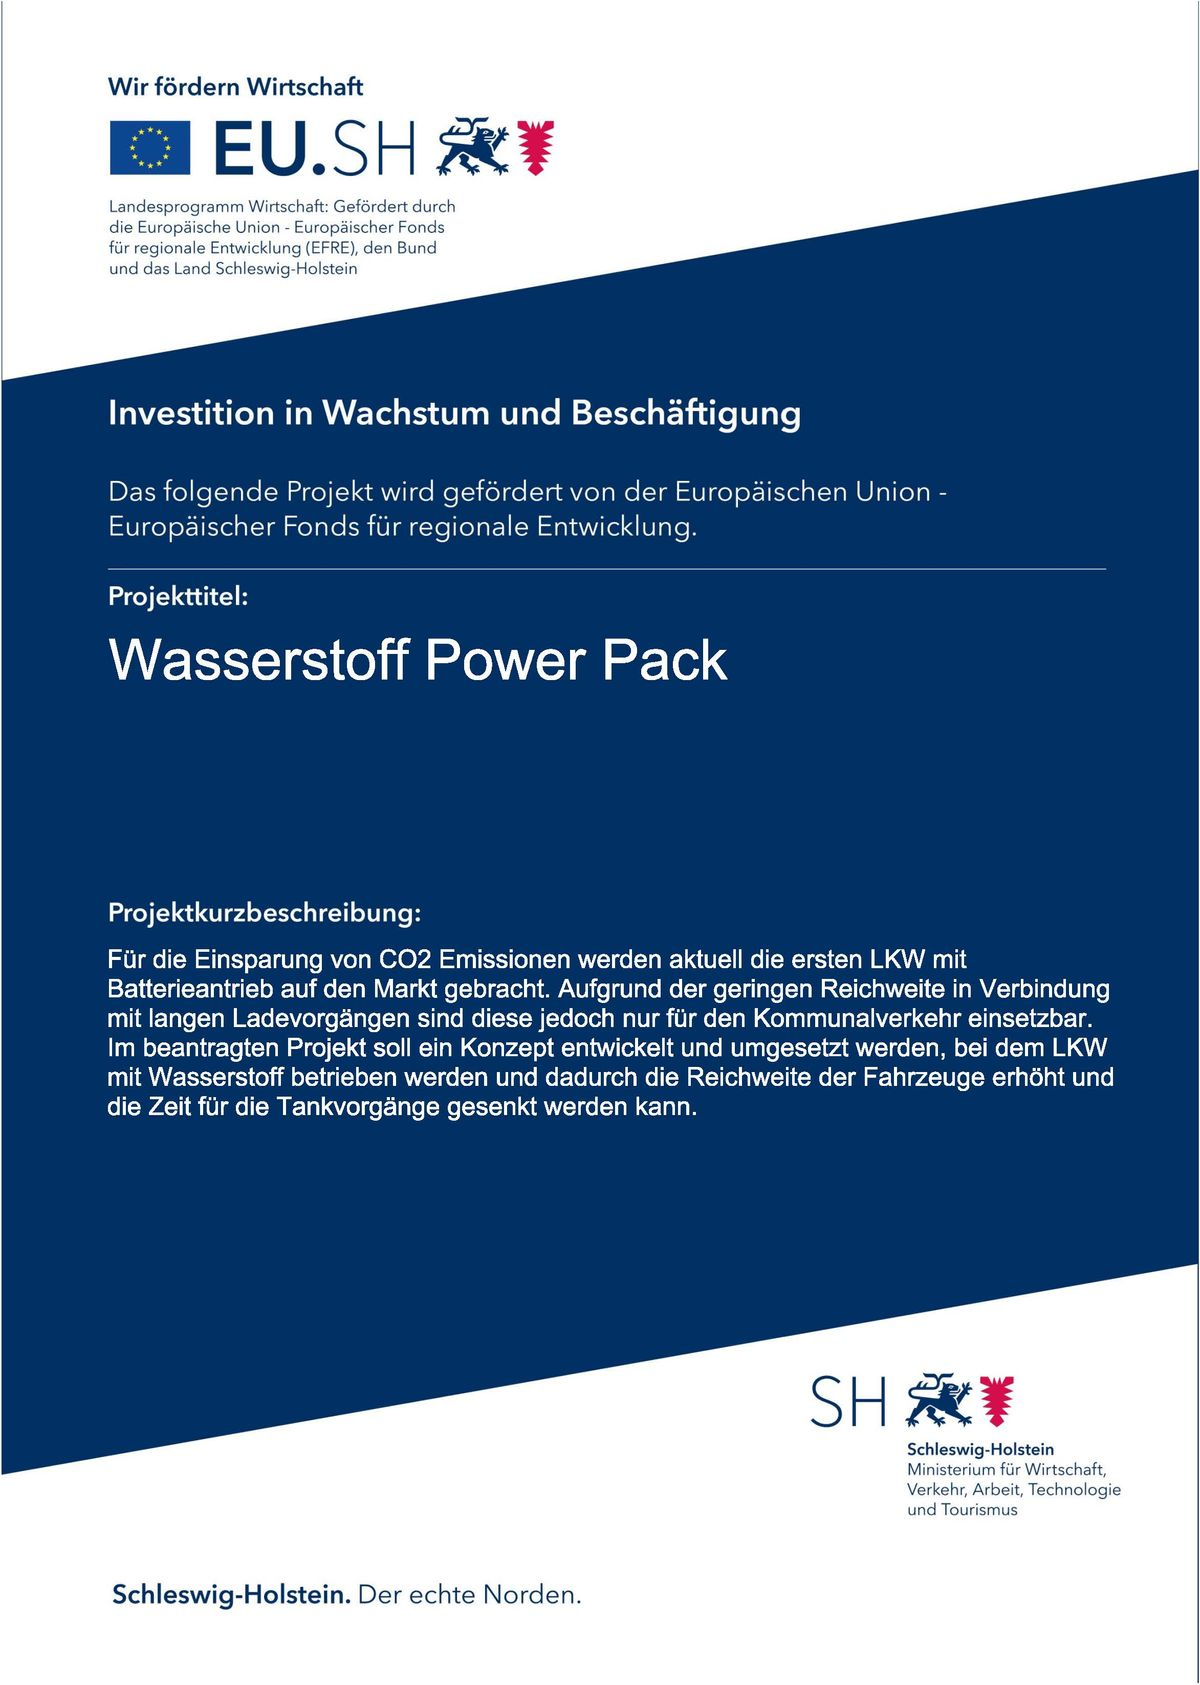 Wasserstoff Power Pack